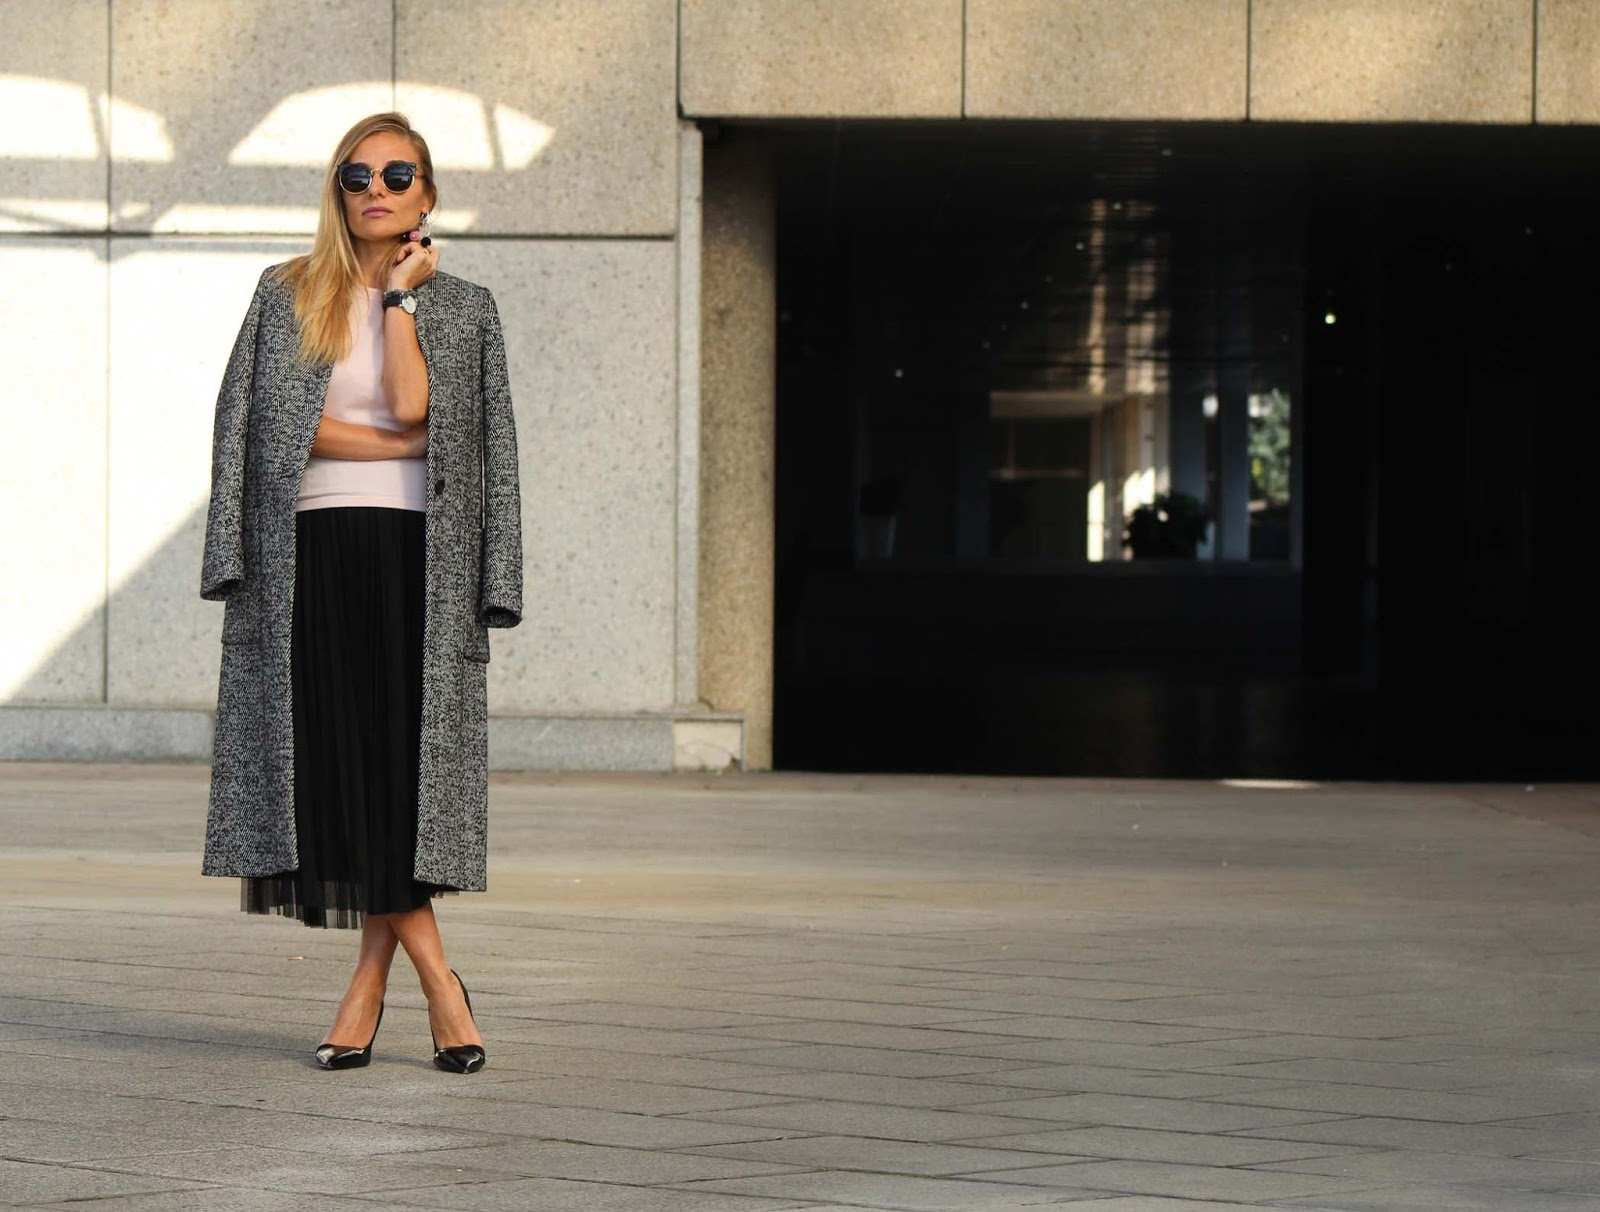 Eniwhere Fashion - Tulle skirt outfit - SheIn